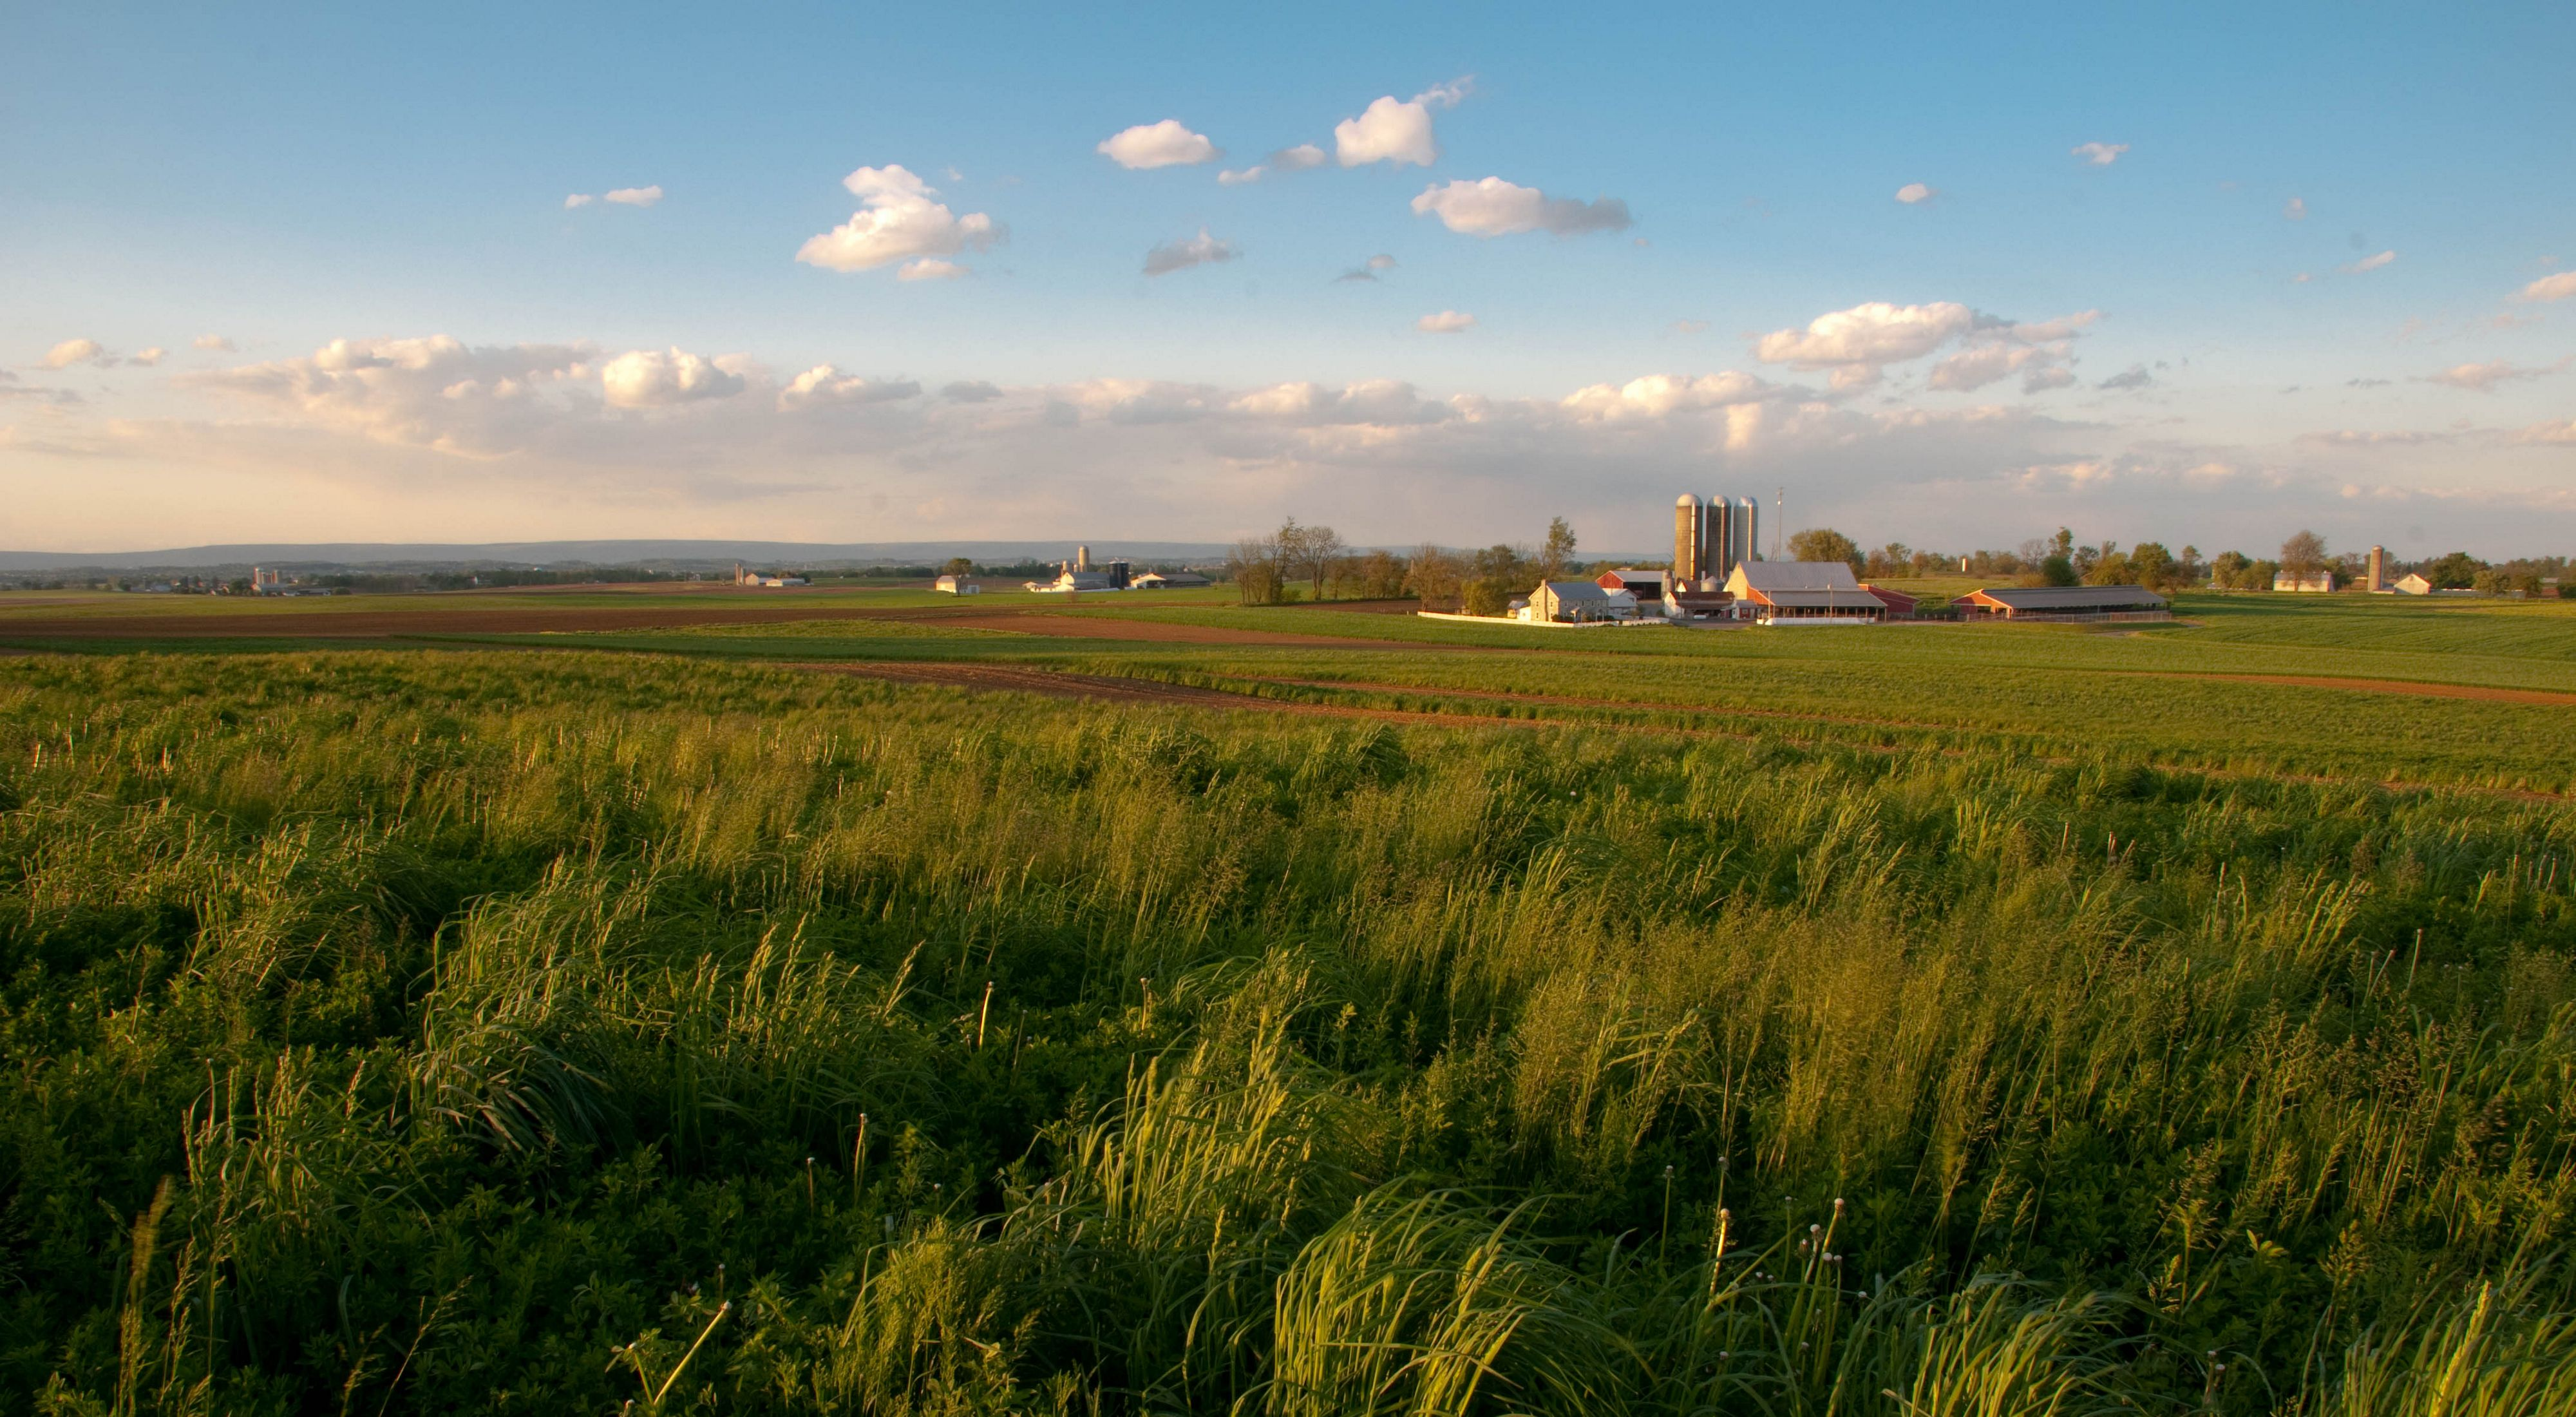 The agriculture industry represents the backbone of Pennsylvania's heritage and economy.